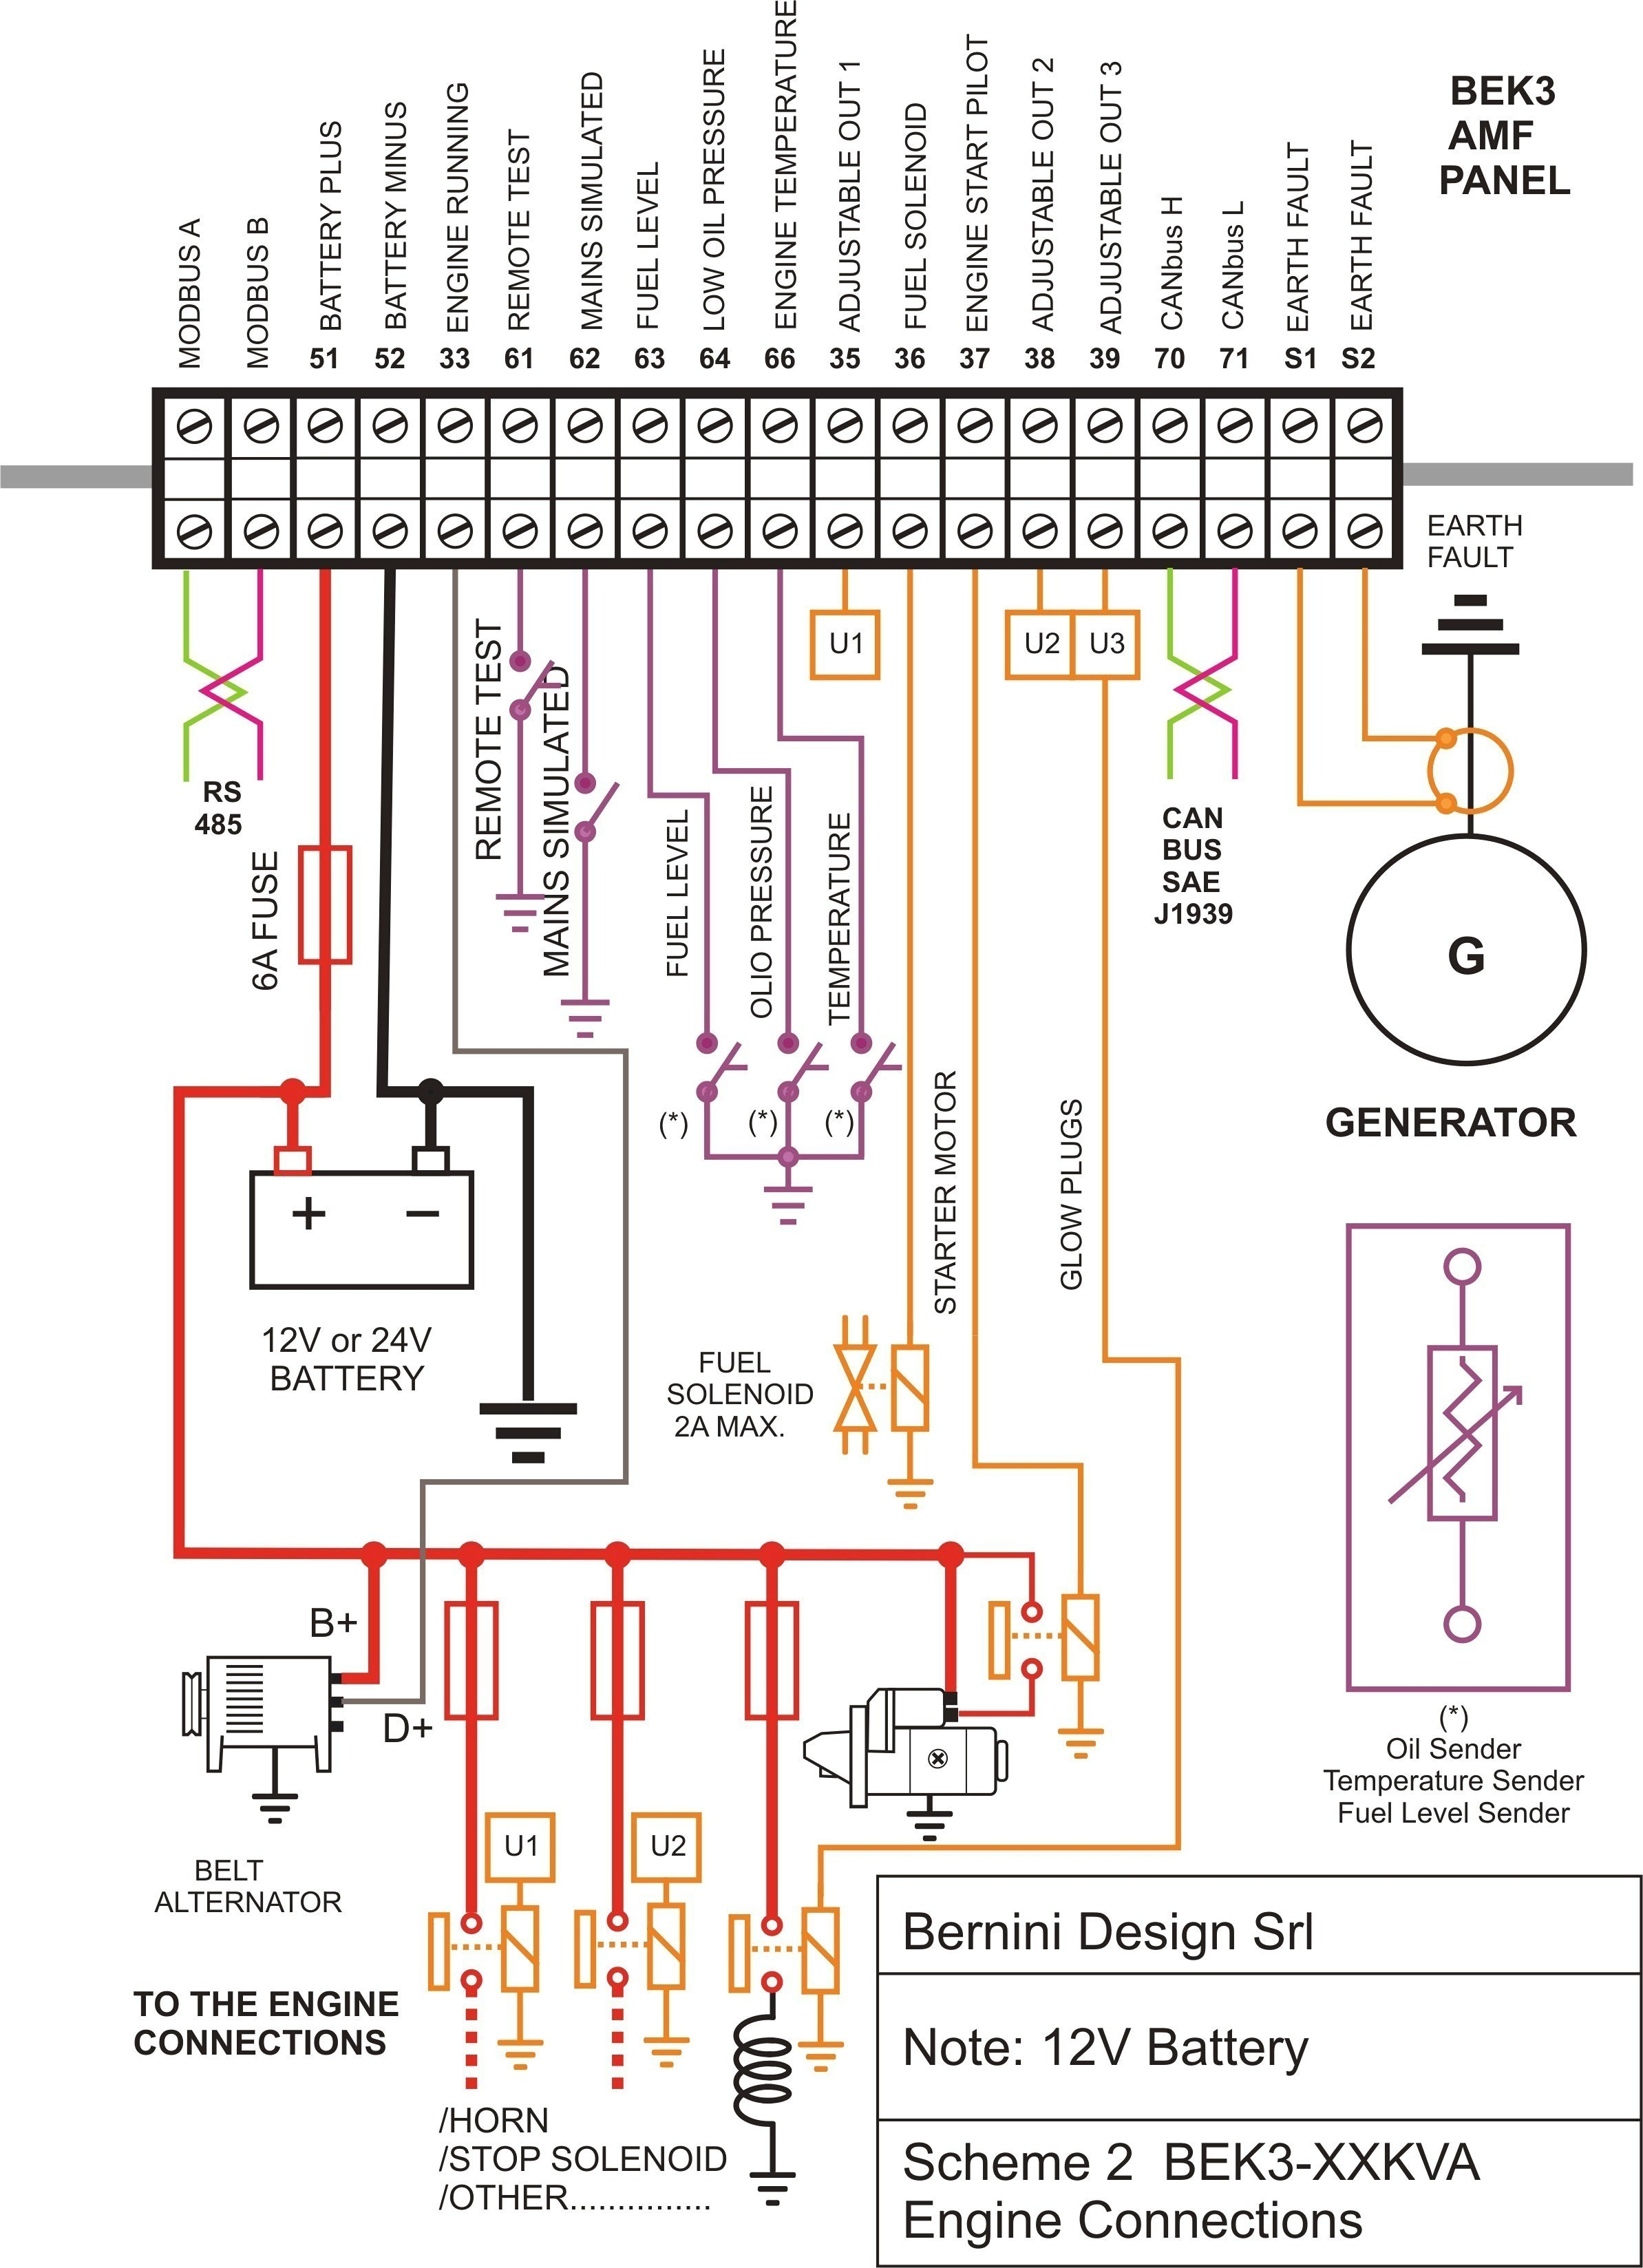 [SCHEMATICS_43NM]  Rv Park Wiring Diagram | Wiring Diagram | Wiring Diagram Rv Park |  | Wiring Diagram - AutoScout24